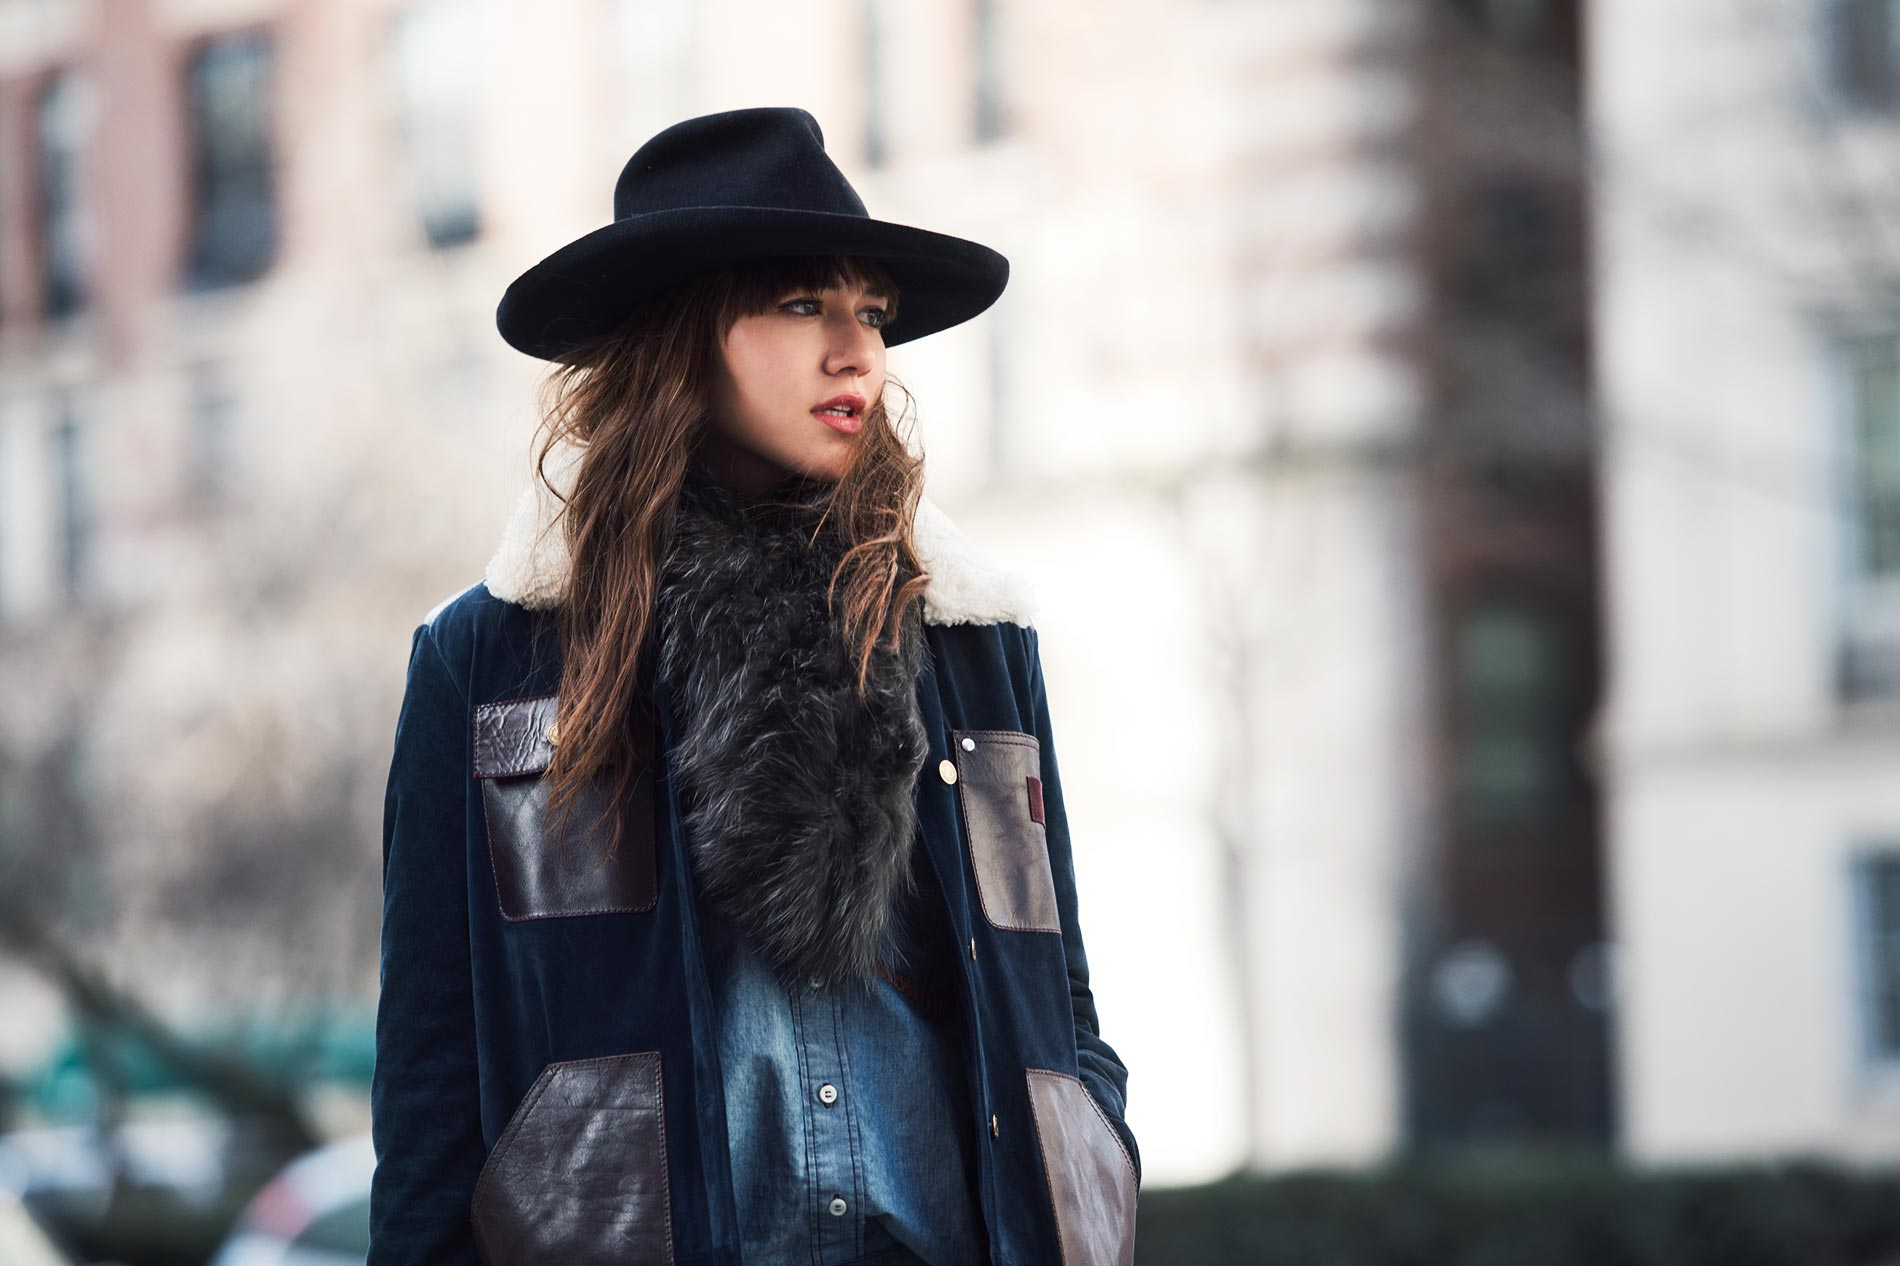 Natalie Suarez at New York Fashion Week Fall/Winter 2015